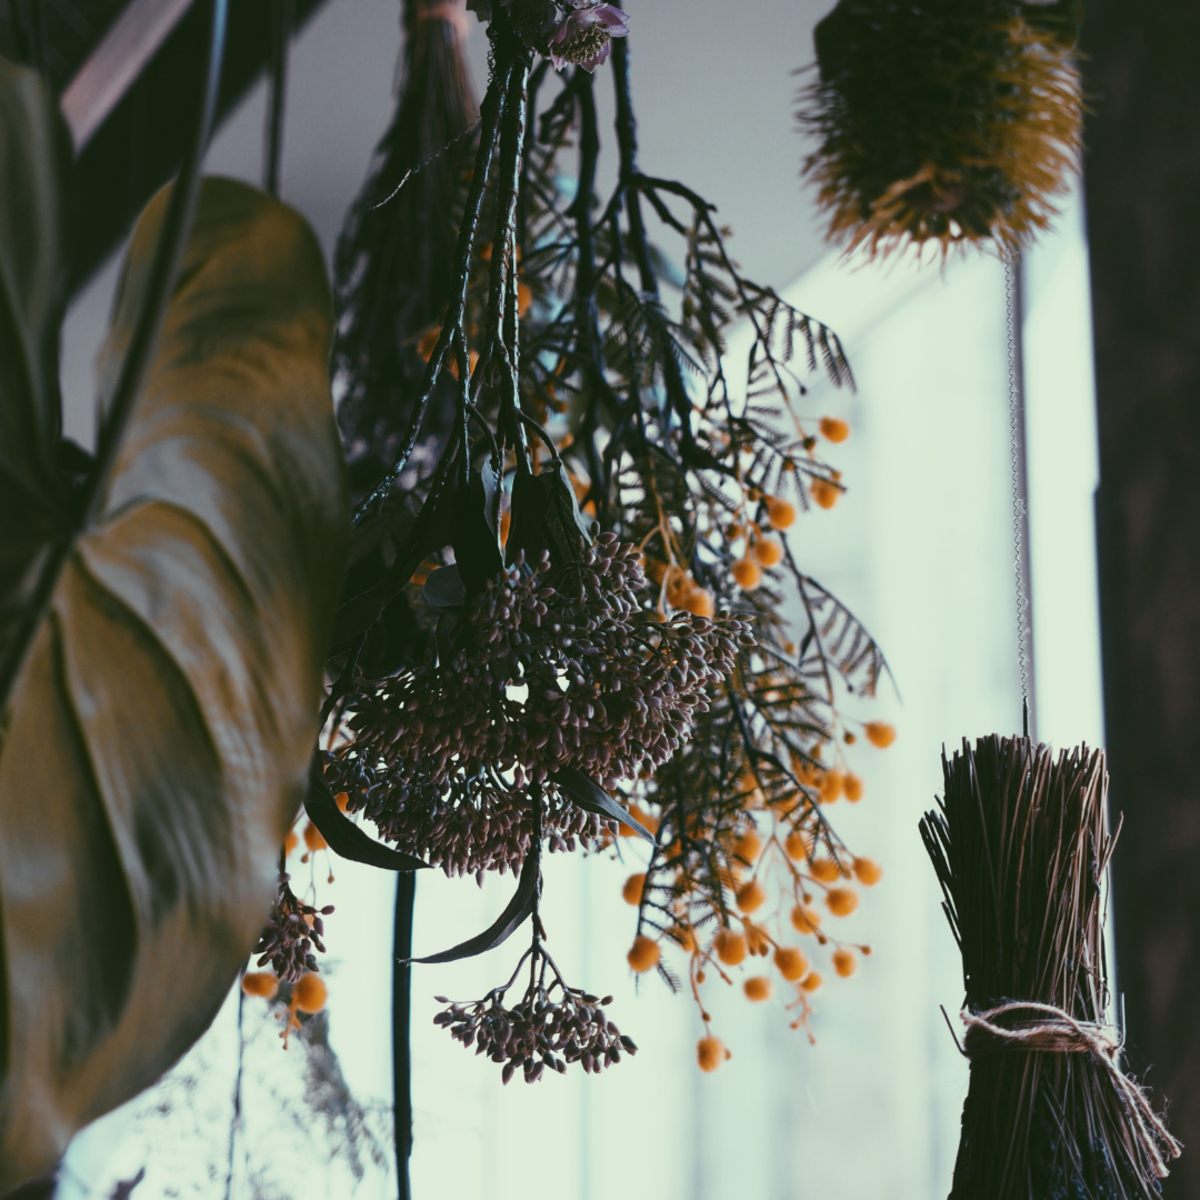 Herbs are commonly used in healing and magickal spell-casting.